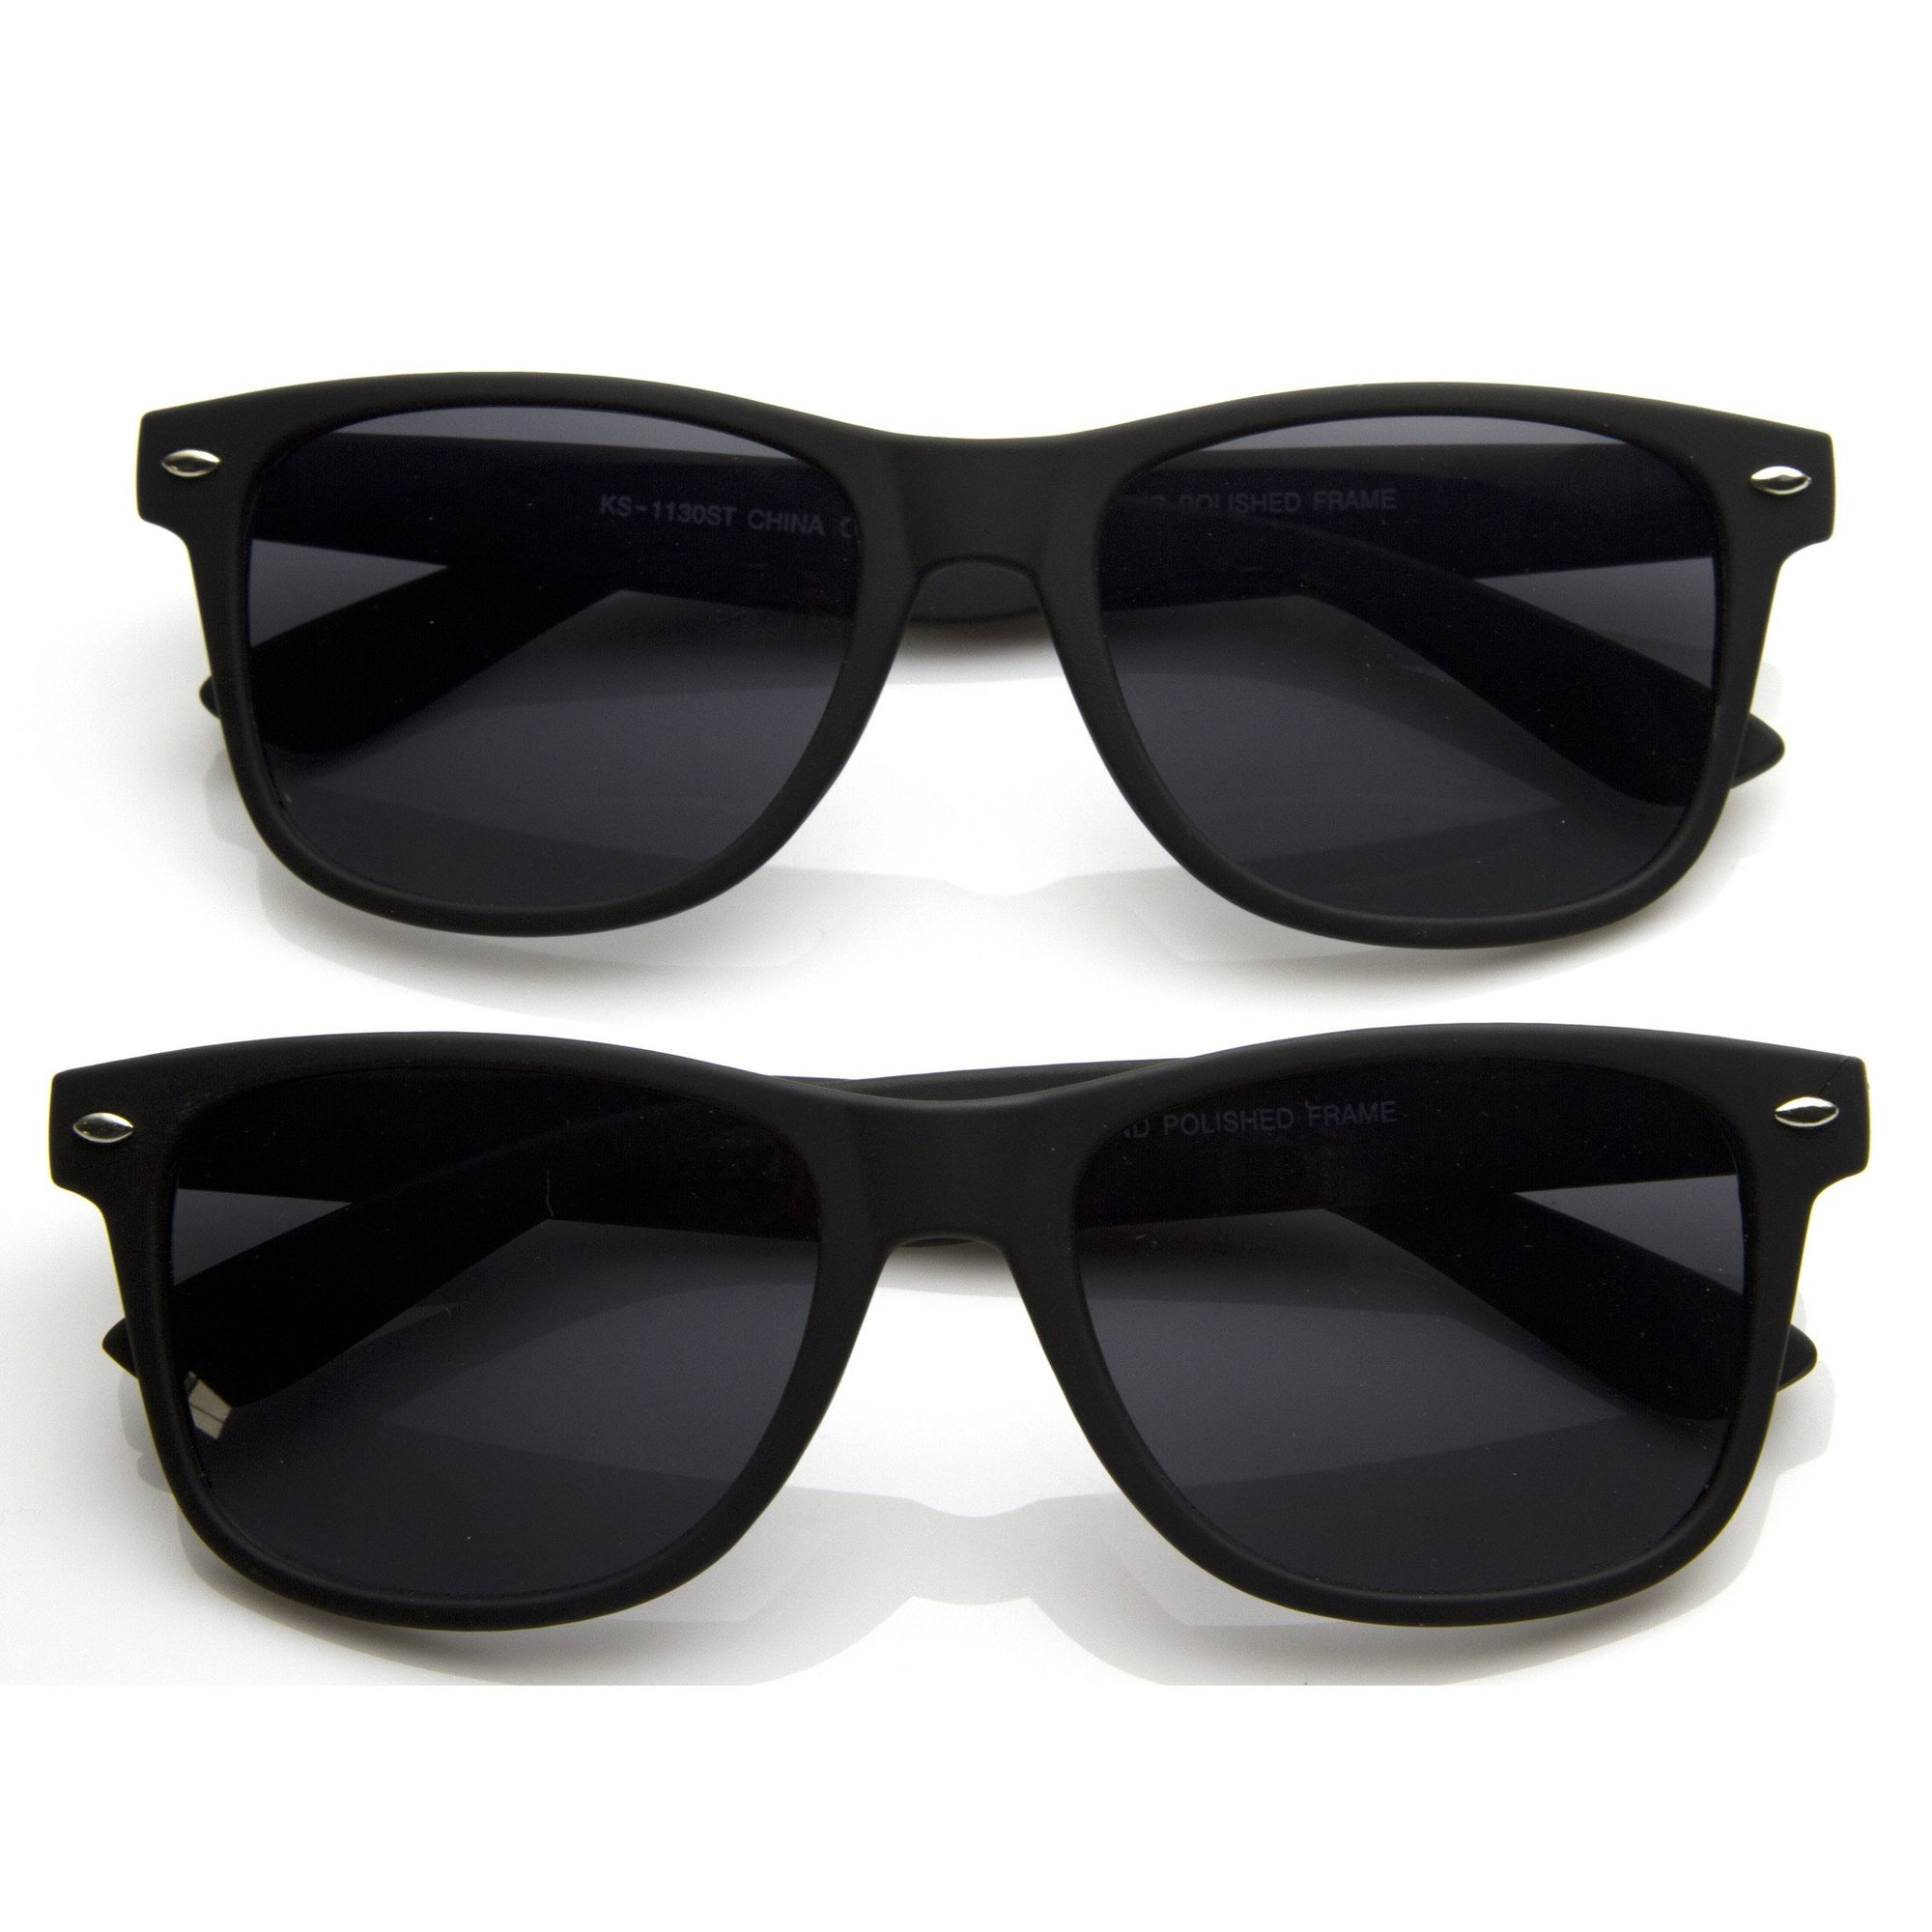 Retro Matte Flat Black Horned Rim Sunglasses 8698 [2 Pack]